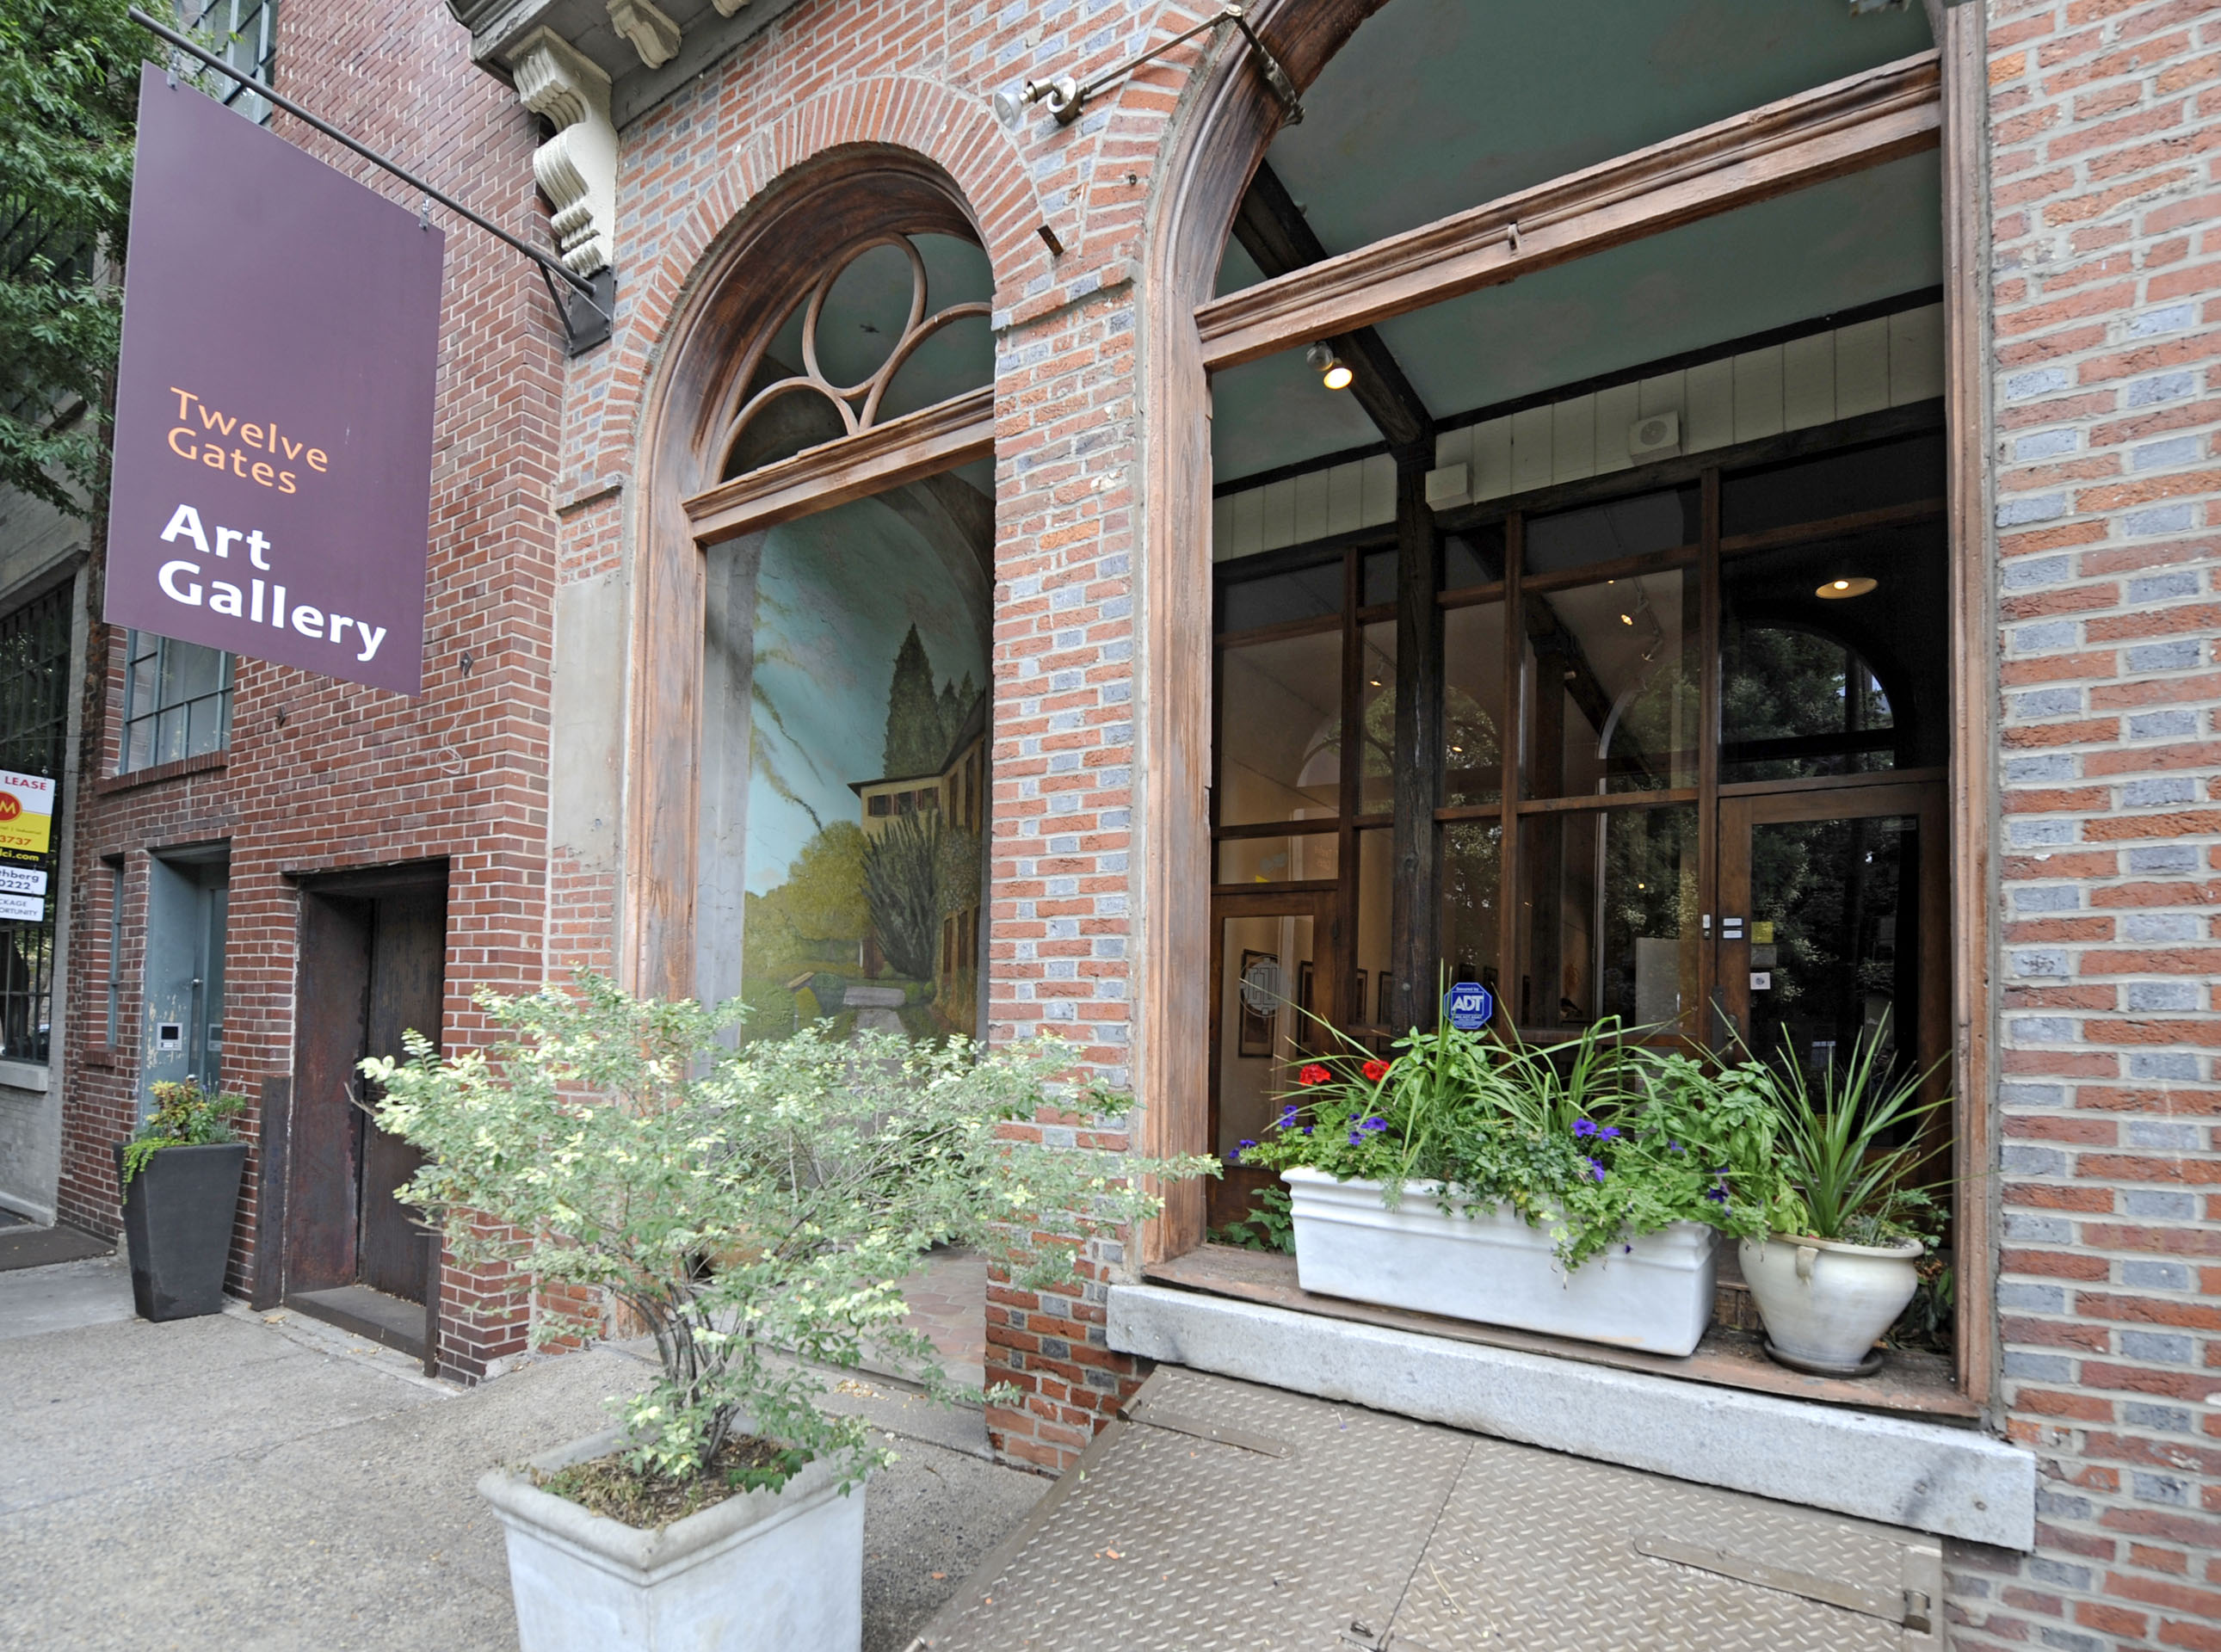 305 Cherry Street, in Old City, is tax delinquent. The art gallery was a tenant, not the owner. (Clem Murray / Inquirer)